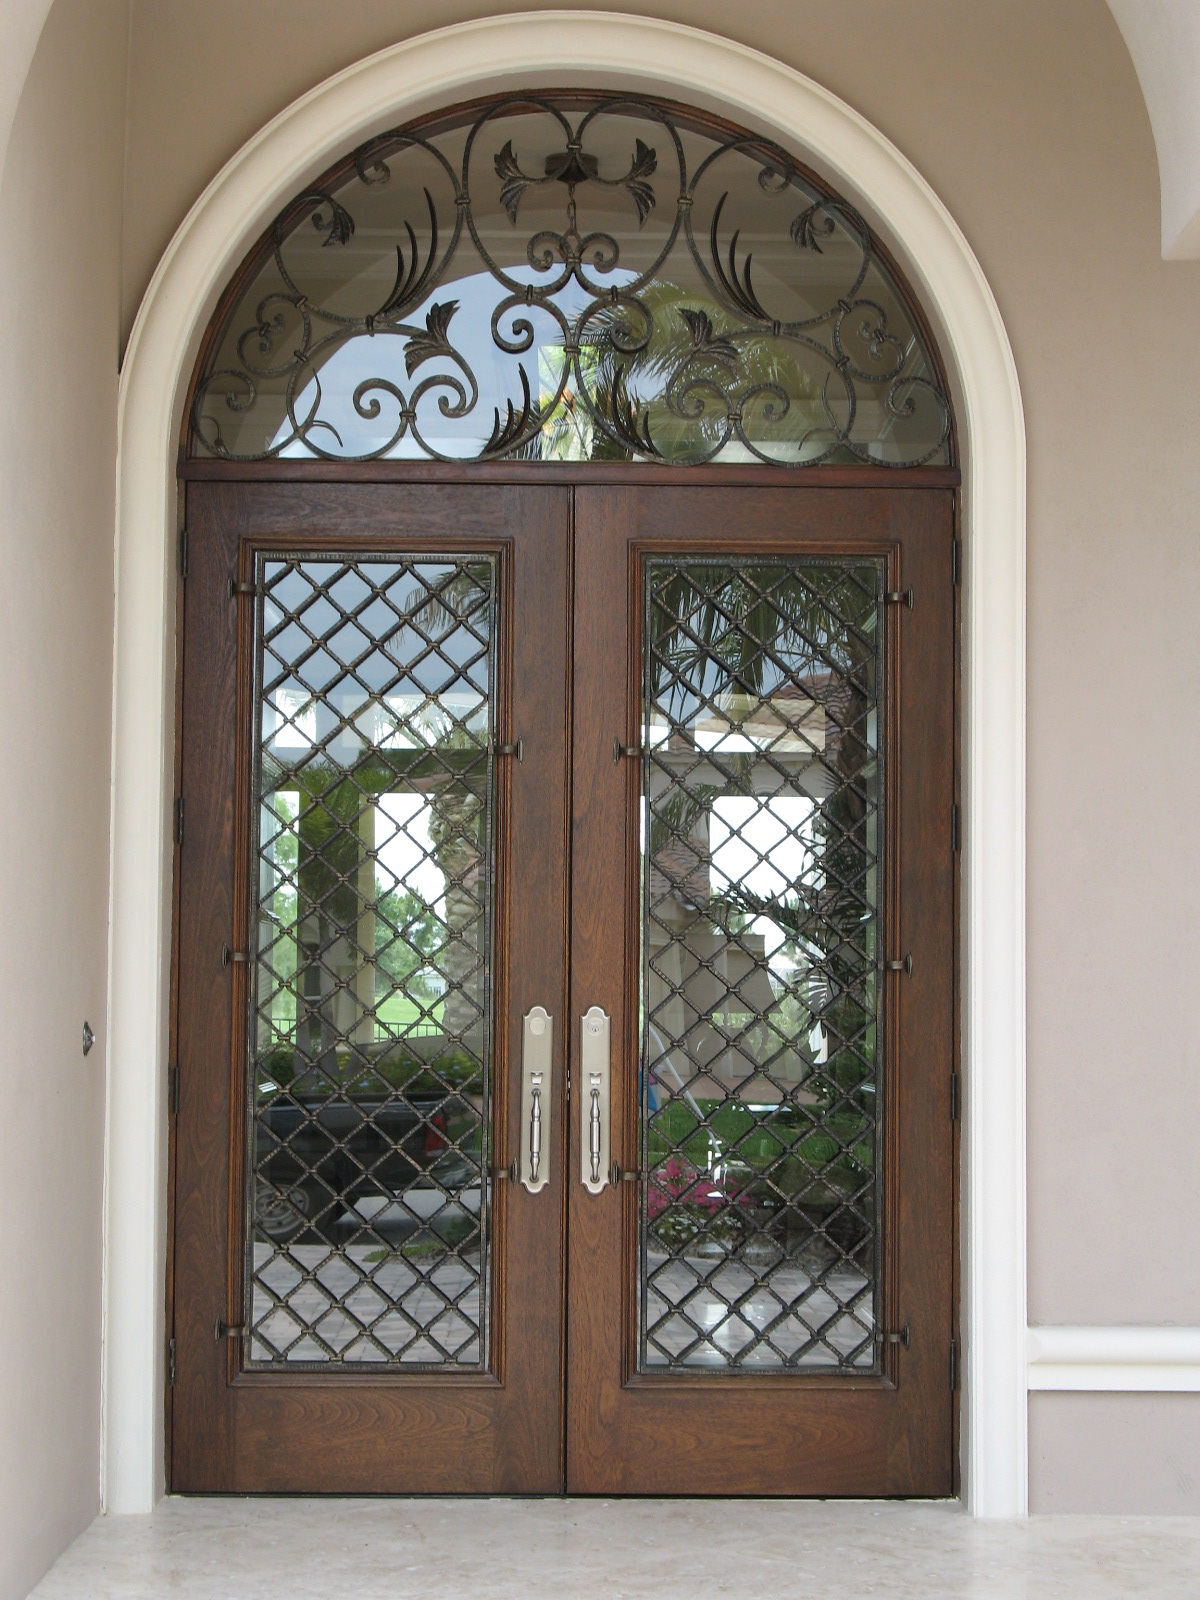 Merveilleux Browse Gallery By Doors Type: Wrought Iron Doors French Doors Leaded Glass  Doors Solid Wood Doors Interior Doors Contemporary Doors